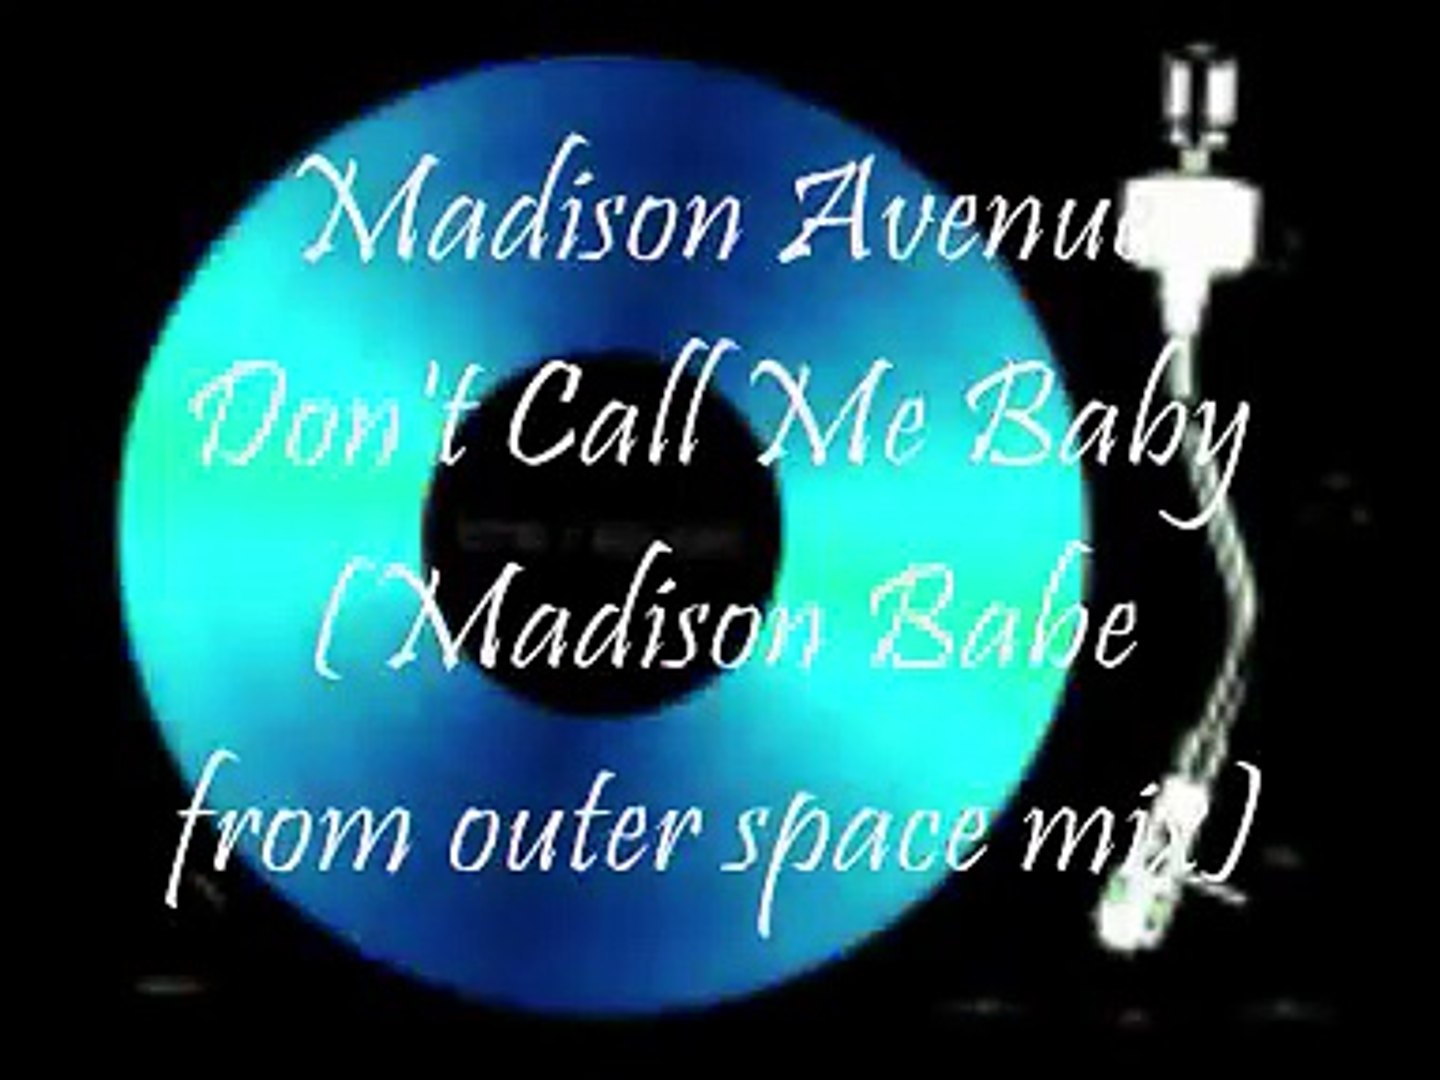 Madison Avenue Don t Call Me Baby (Madison Babe from outer space mix)